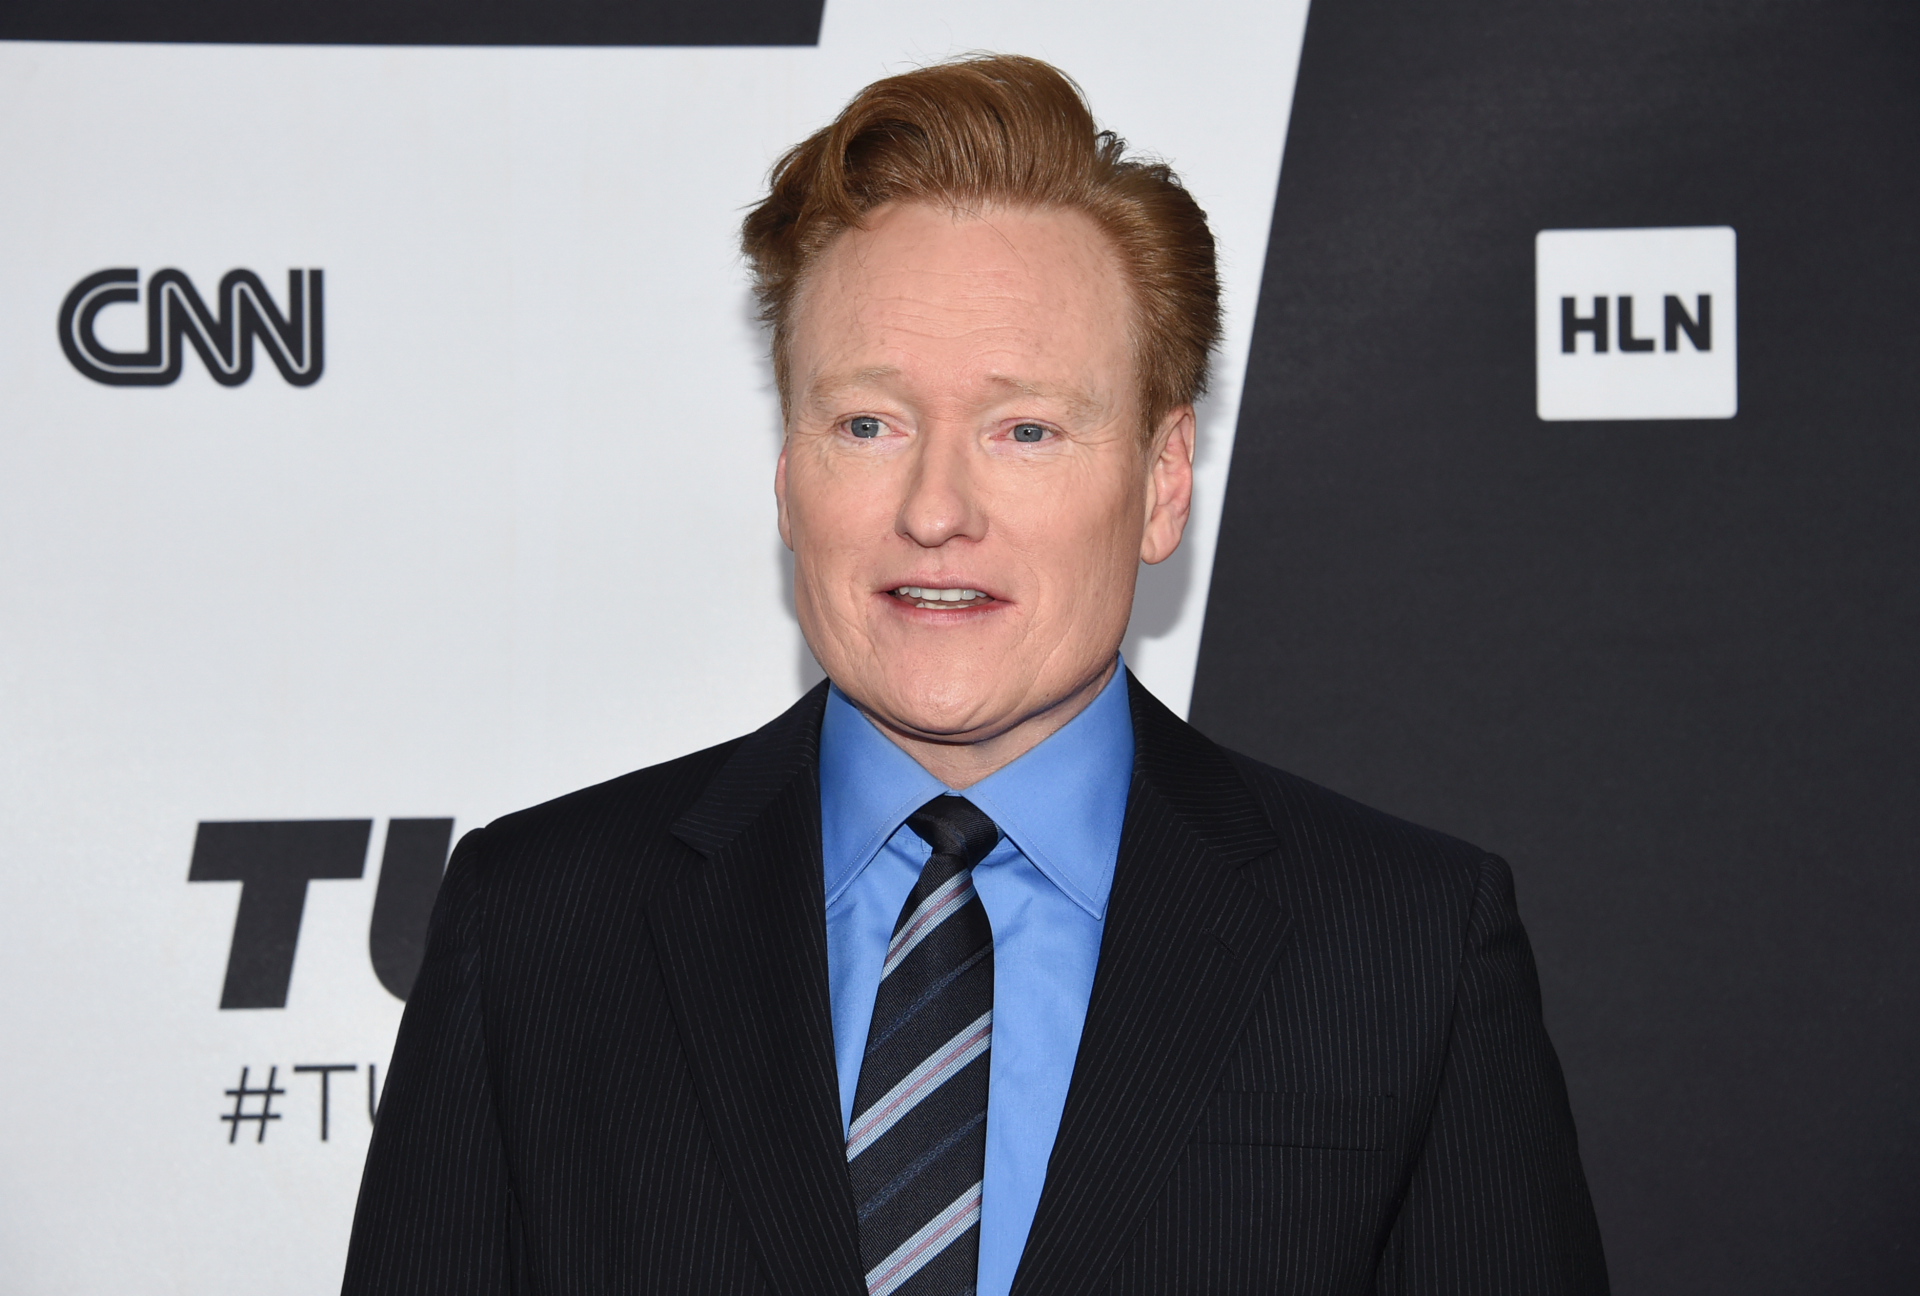 Westlake Legal Group ContentBroker_contentid-88a63f3254d5493d87de3c571e34b2d6 Conan O'Brien vows to negotiate Trump's Greenland deal, offers up Florida Joseph Wulfsohn fox-news/person/donald-trump fox-news/entertainment/politics-on-late-night fox-news/entertainment fox news fnc/entertainment fnc article 215c442e-c56f-519f-b4a8-fafe447fa689